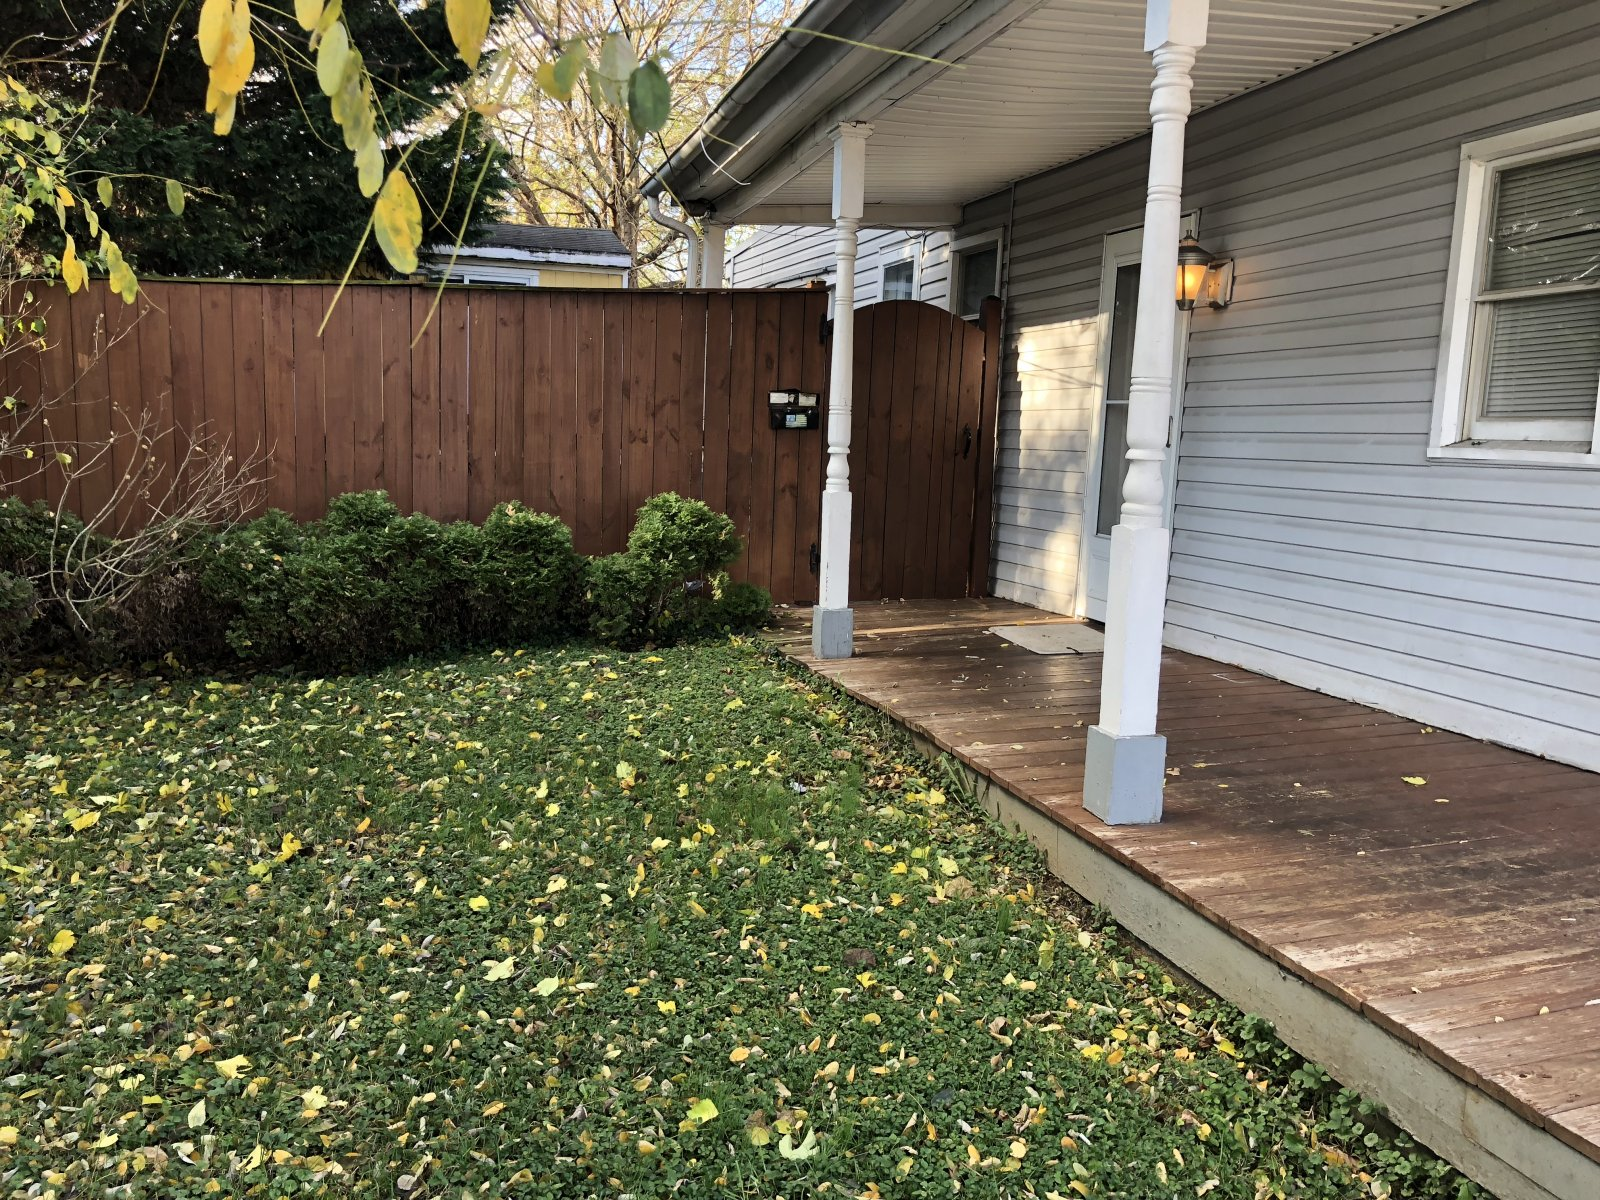 Investment property Hagerstown MD